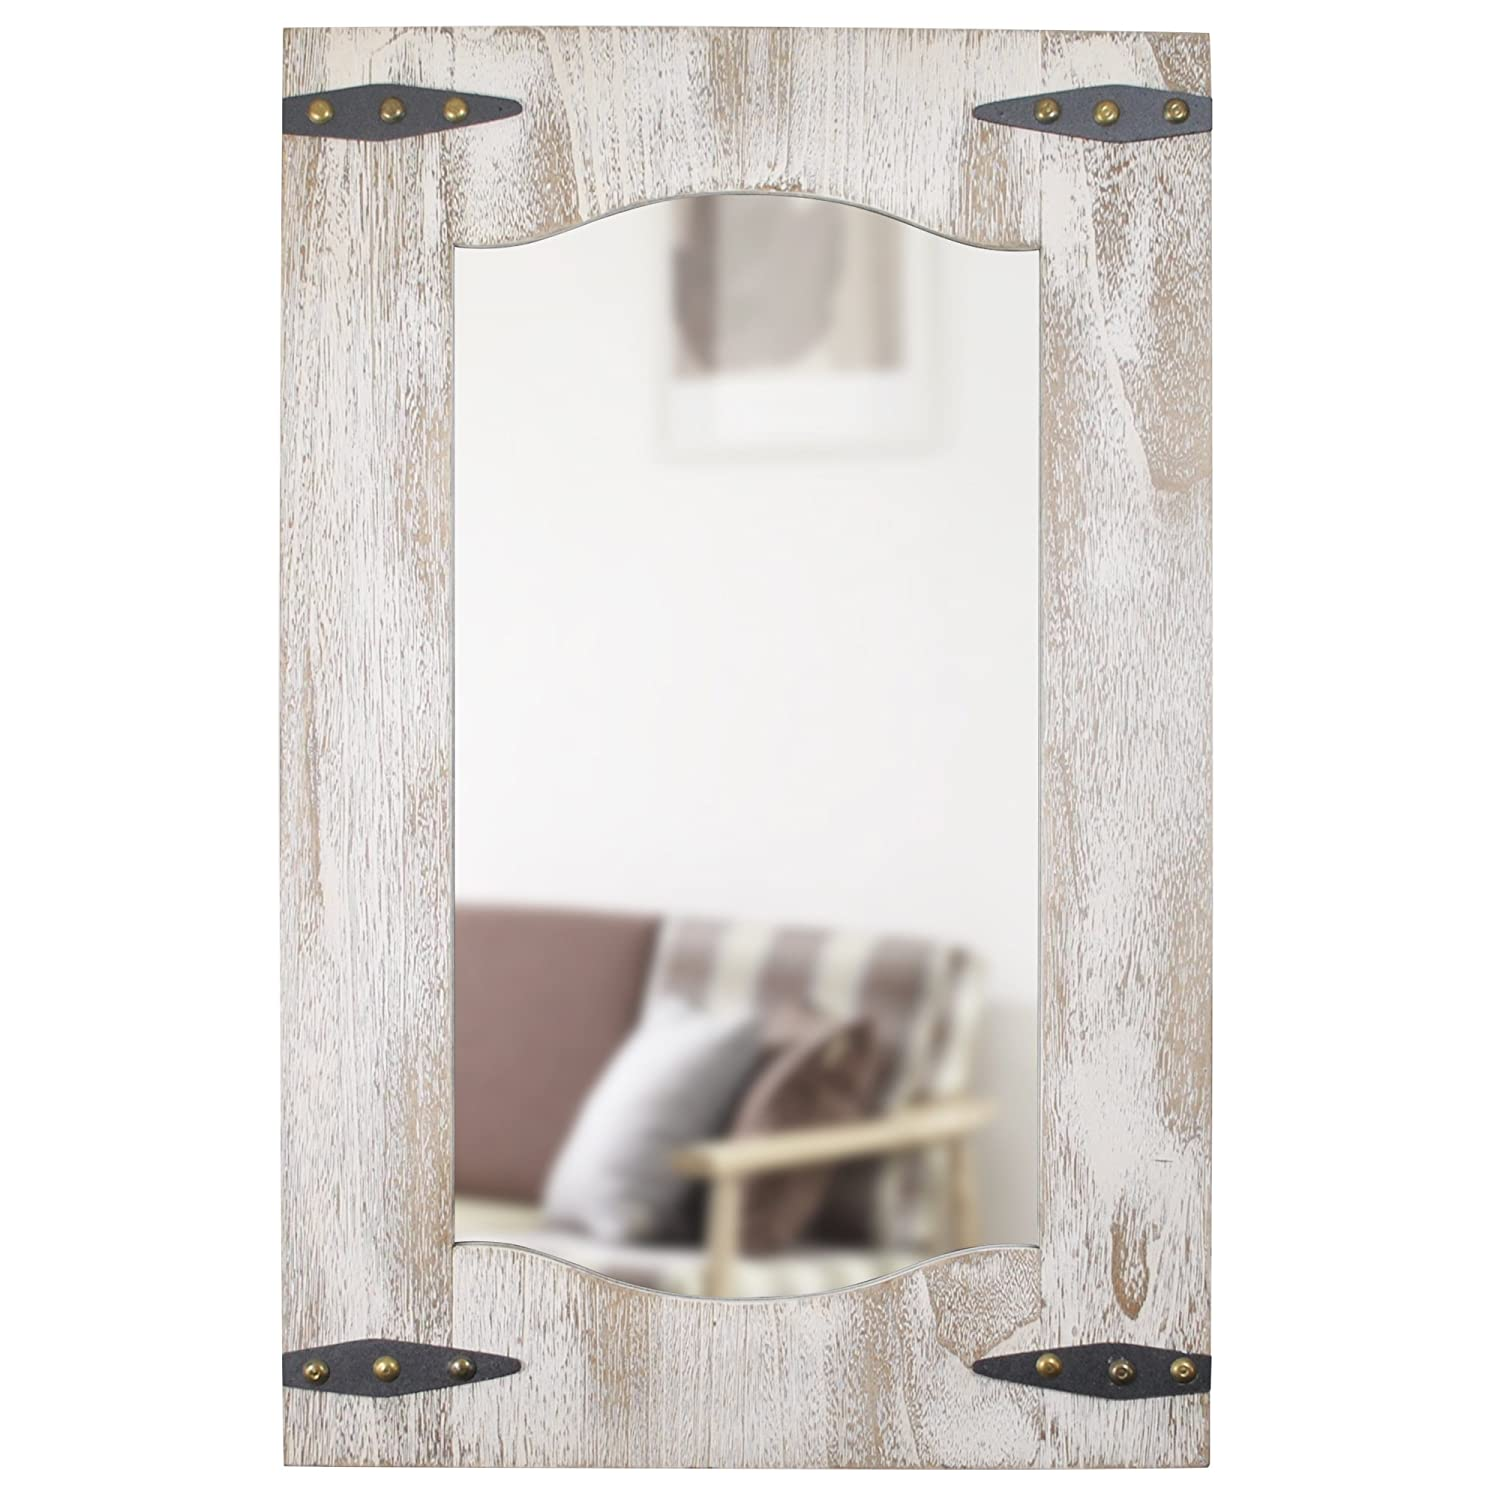 FirsTime 70000 Barn Door Mirror Wall Clock Tan/Ivory Wood